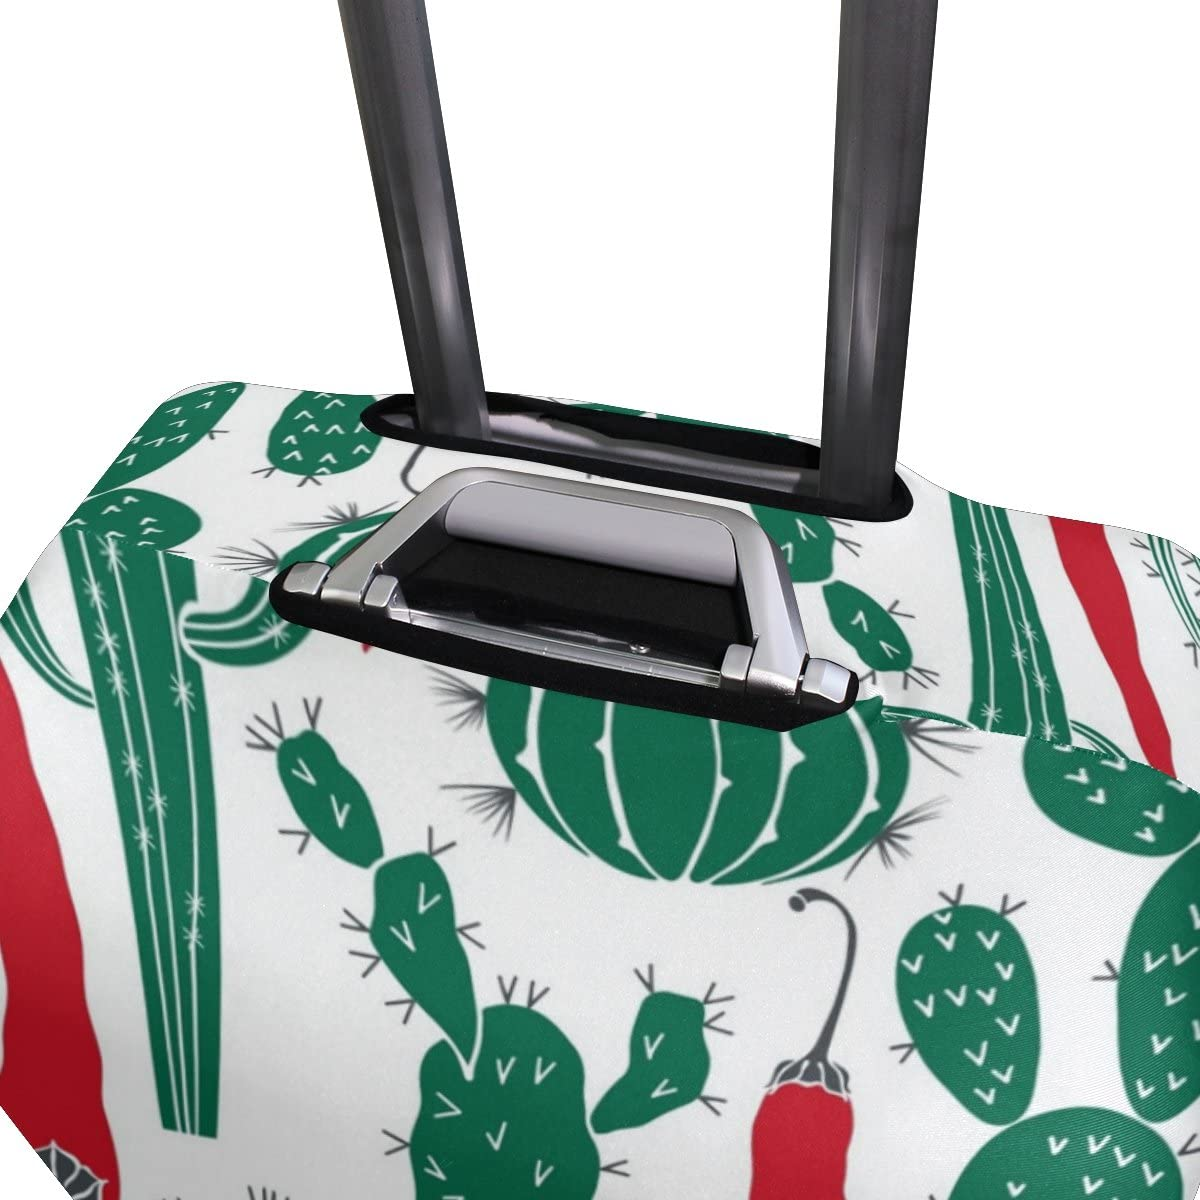 Elastic Travel Luggage Cover Cactus Pepper Suitcase Protector for 18-20 Inch Luggage